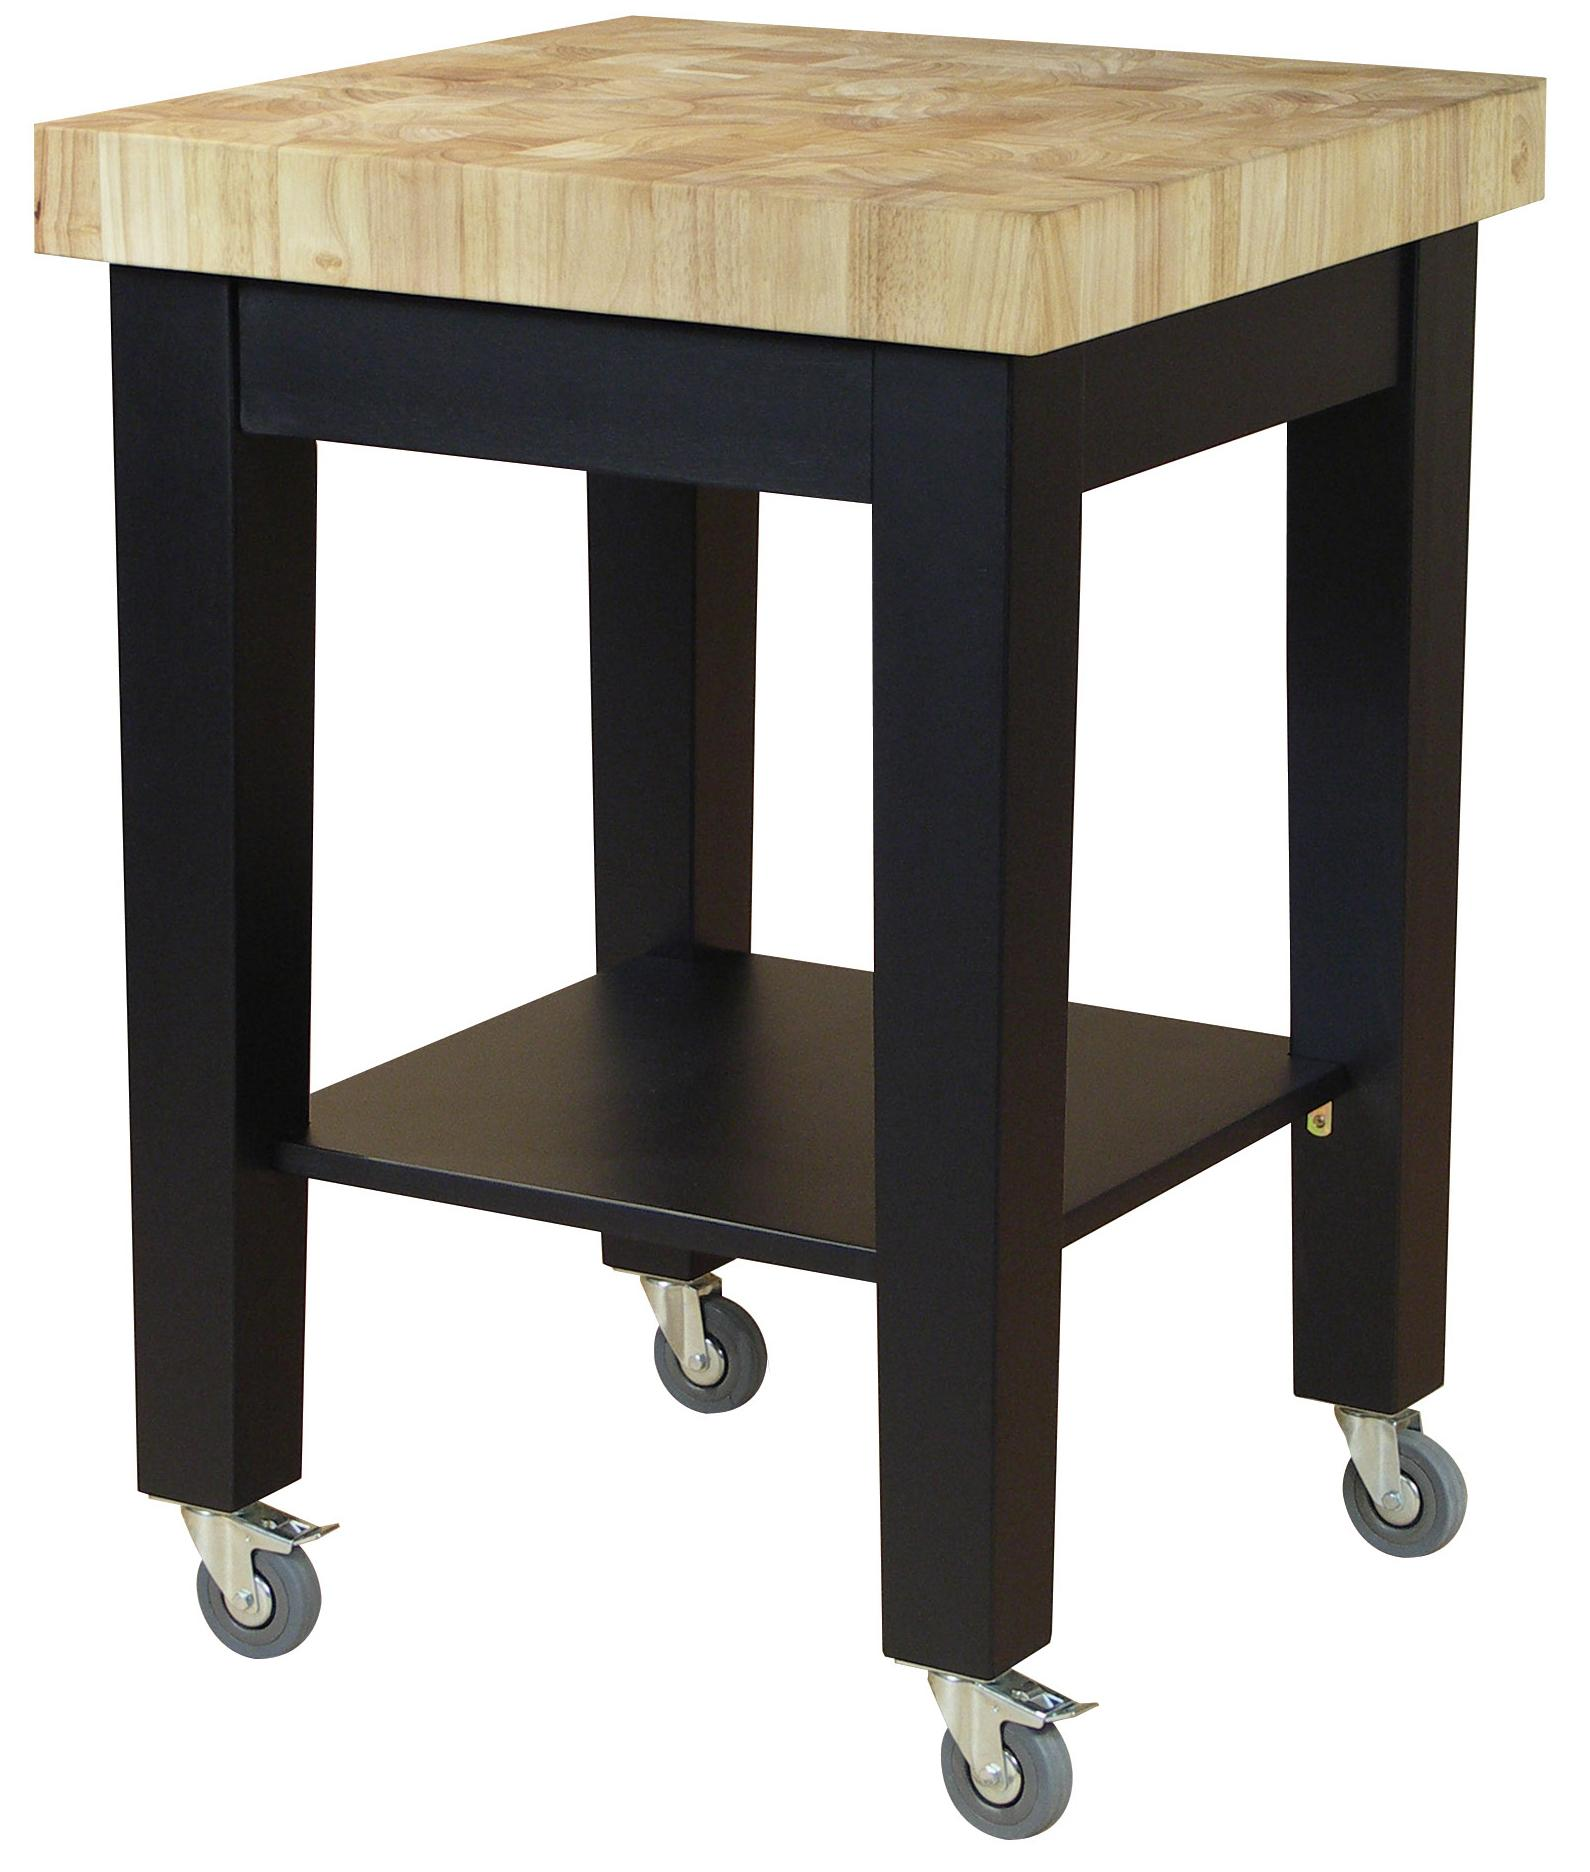 John Thomas Dining Essentials Kitchen Cutting Block Cart - Item Number: WC19-2424